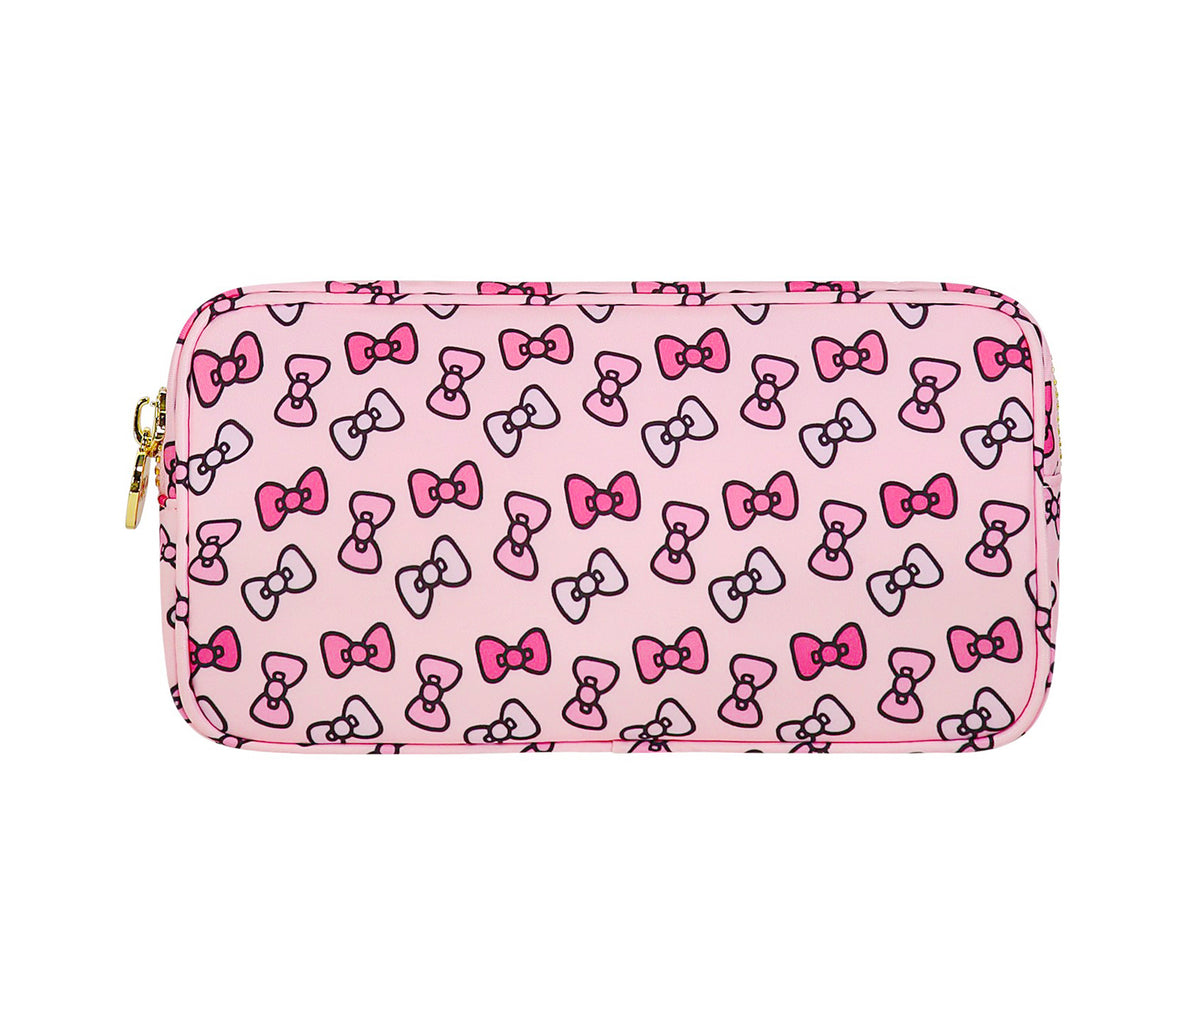 Stoney Clover Lane x Hello Kitty Bows Small Pouch